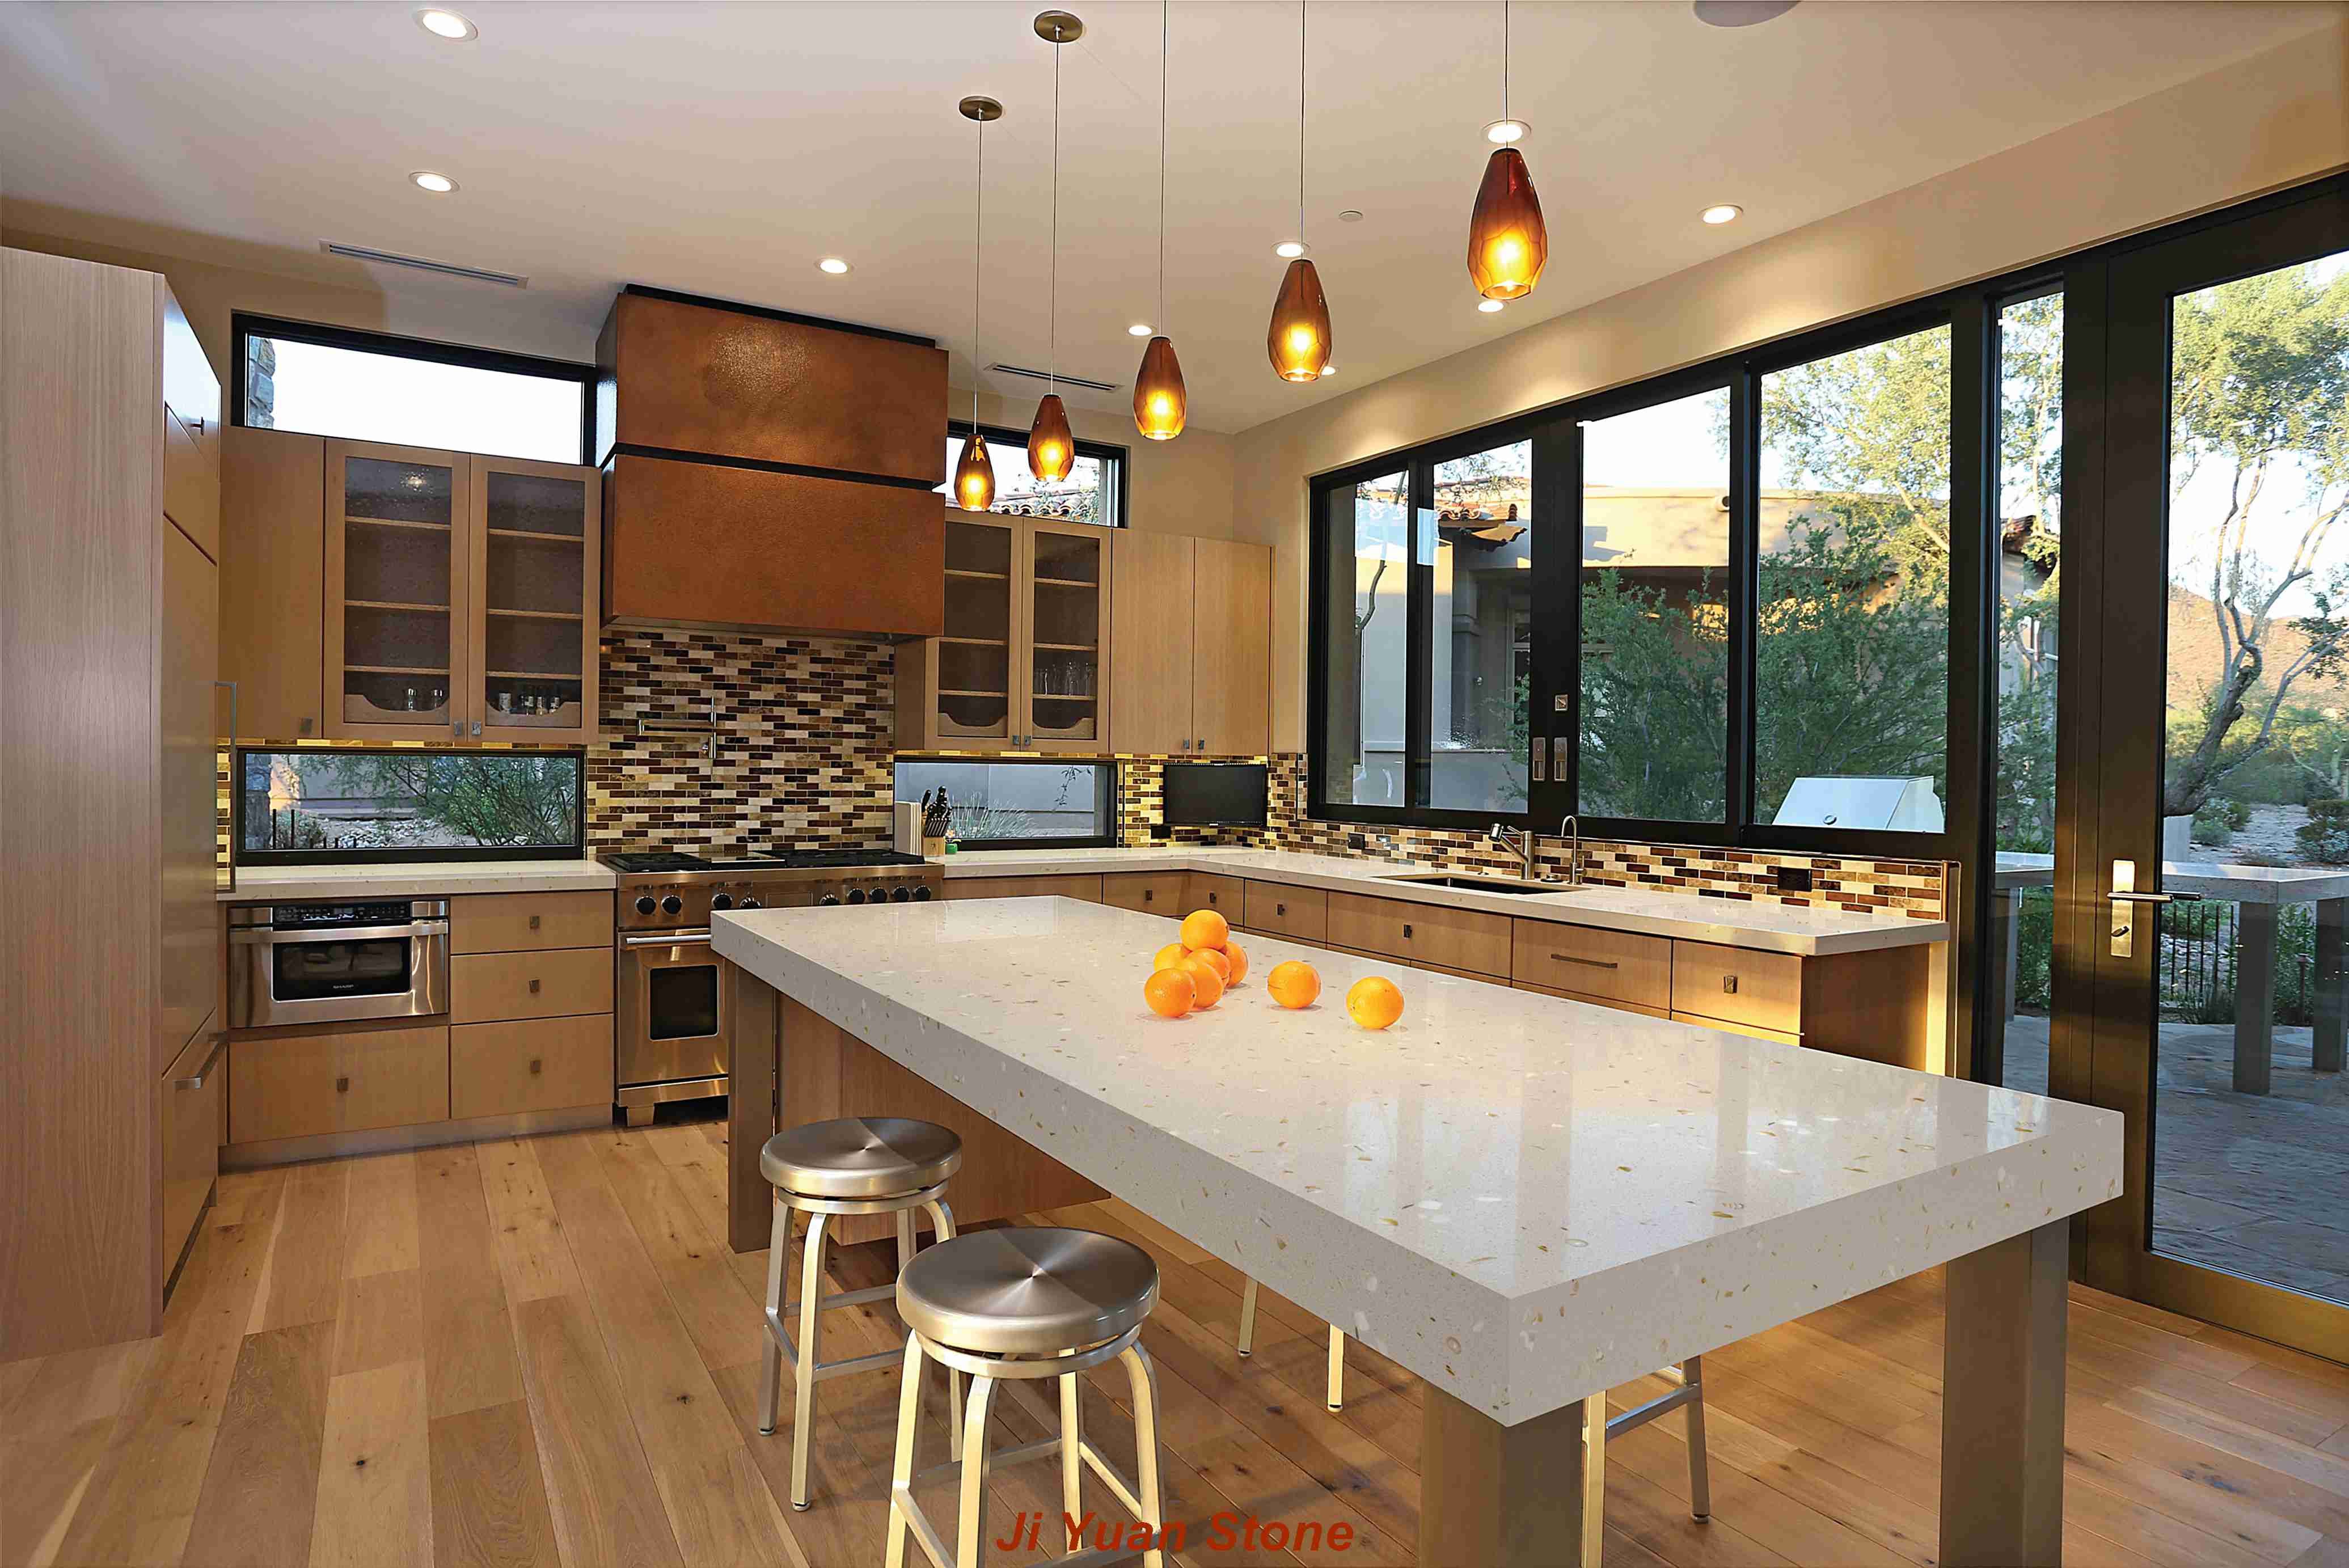 granite quartz countertops what is quartz used for,physical properties of quartz calcutta quartz countertops,caesarstone quartz countertops cryptocrystalline quartz